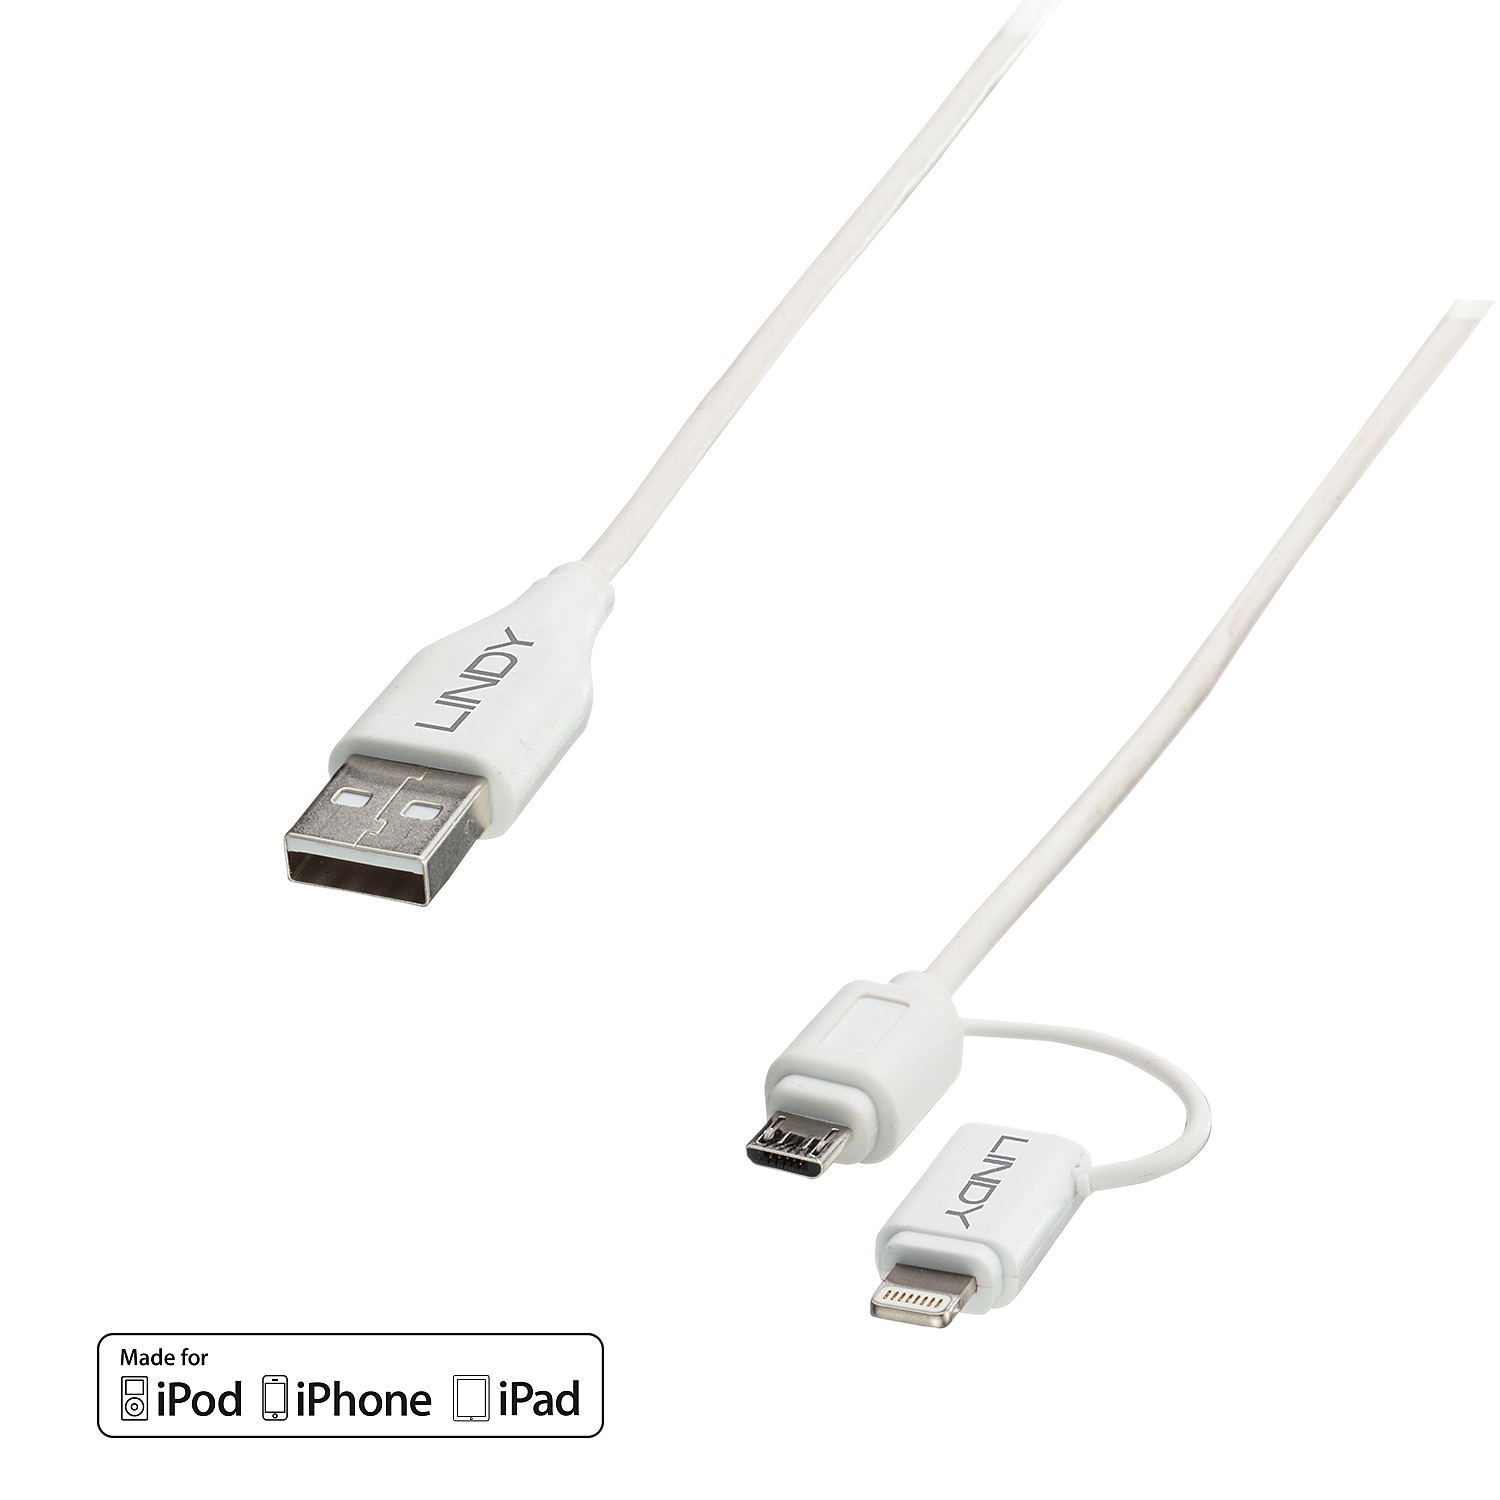 Lindy USB to Micro-B & Lightning Combo - Lade-/Datenkabel für iPad/iPhone/iPod/Handy/Webtablet - Lightning / USB